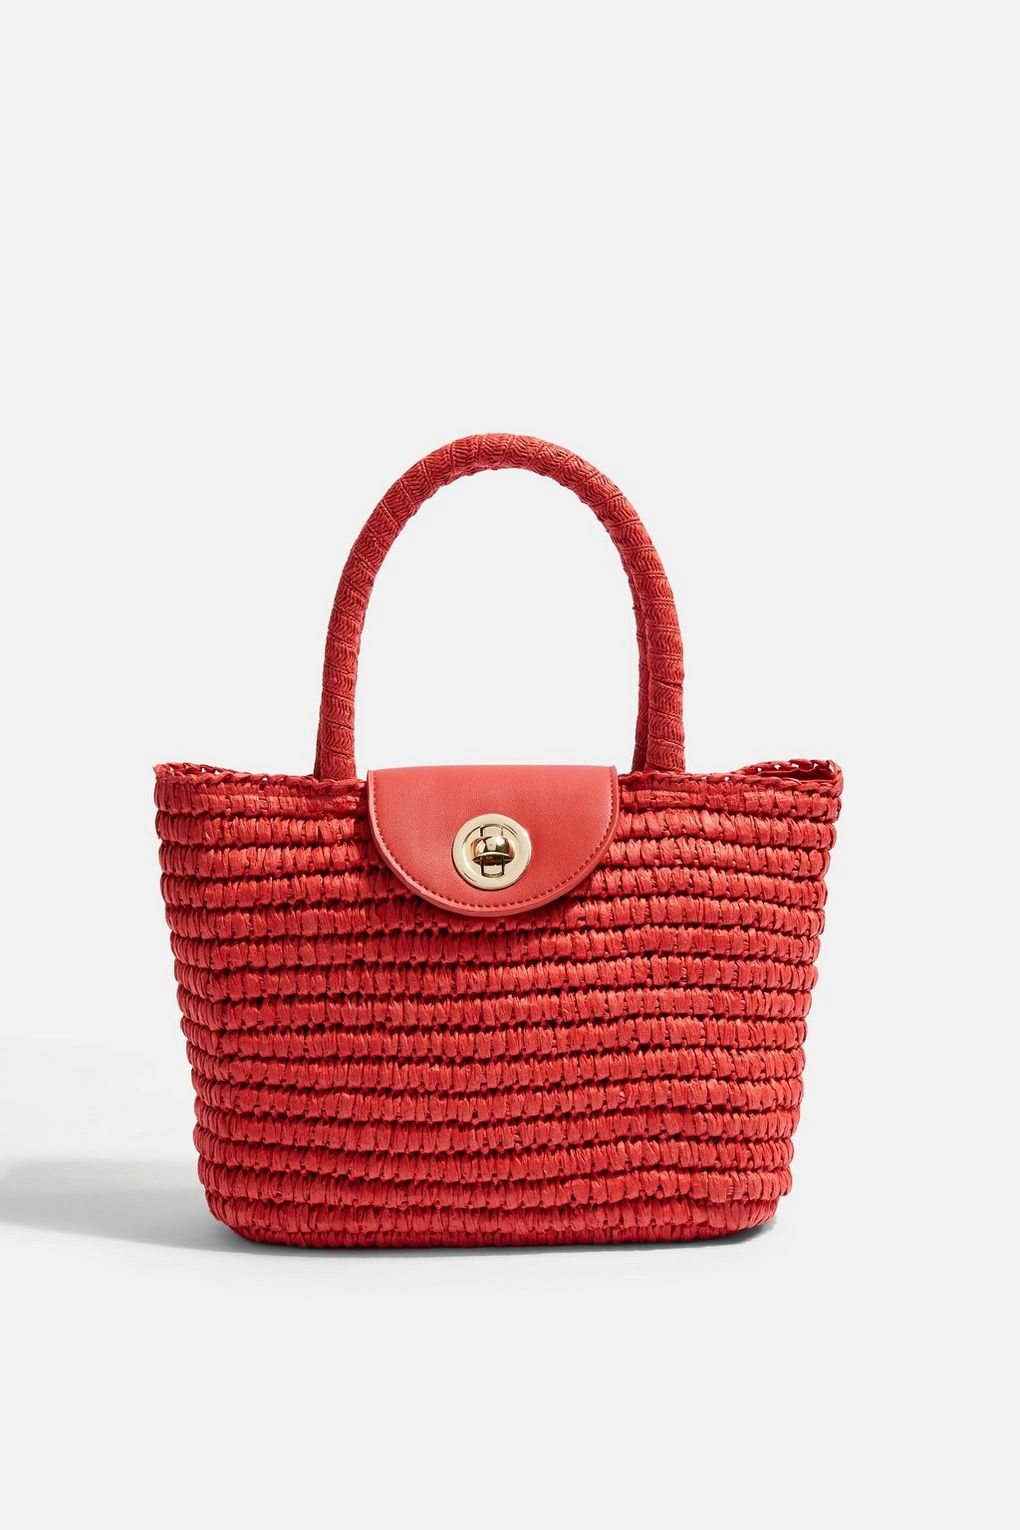 red straw bag.jpg